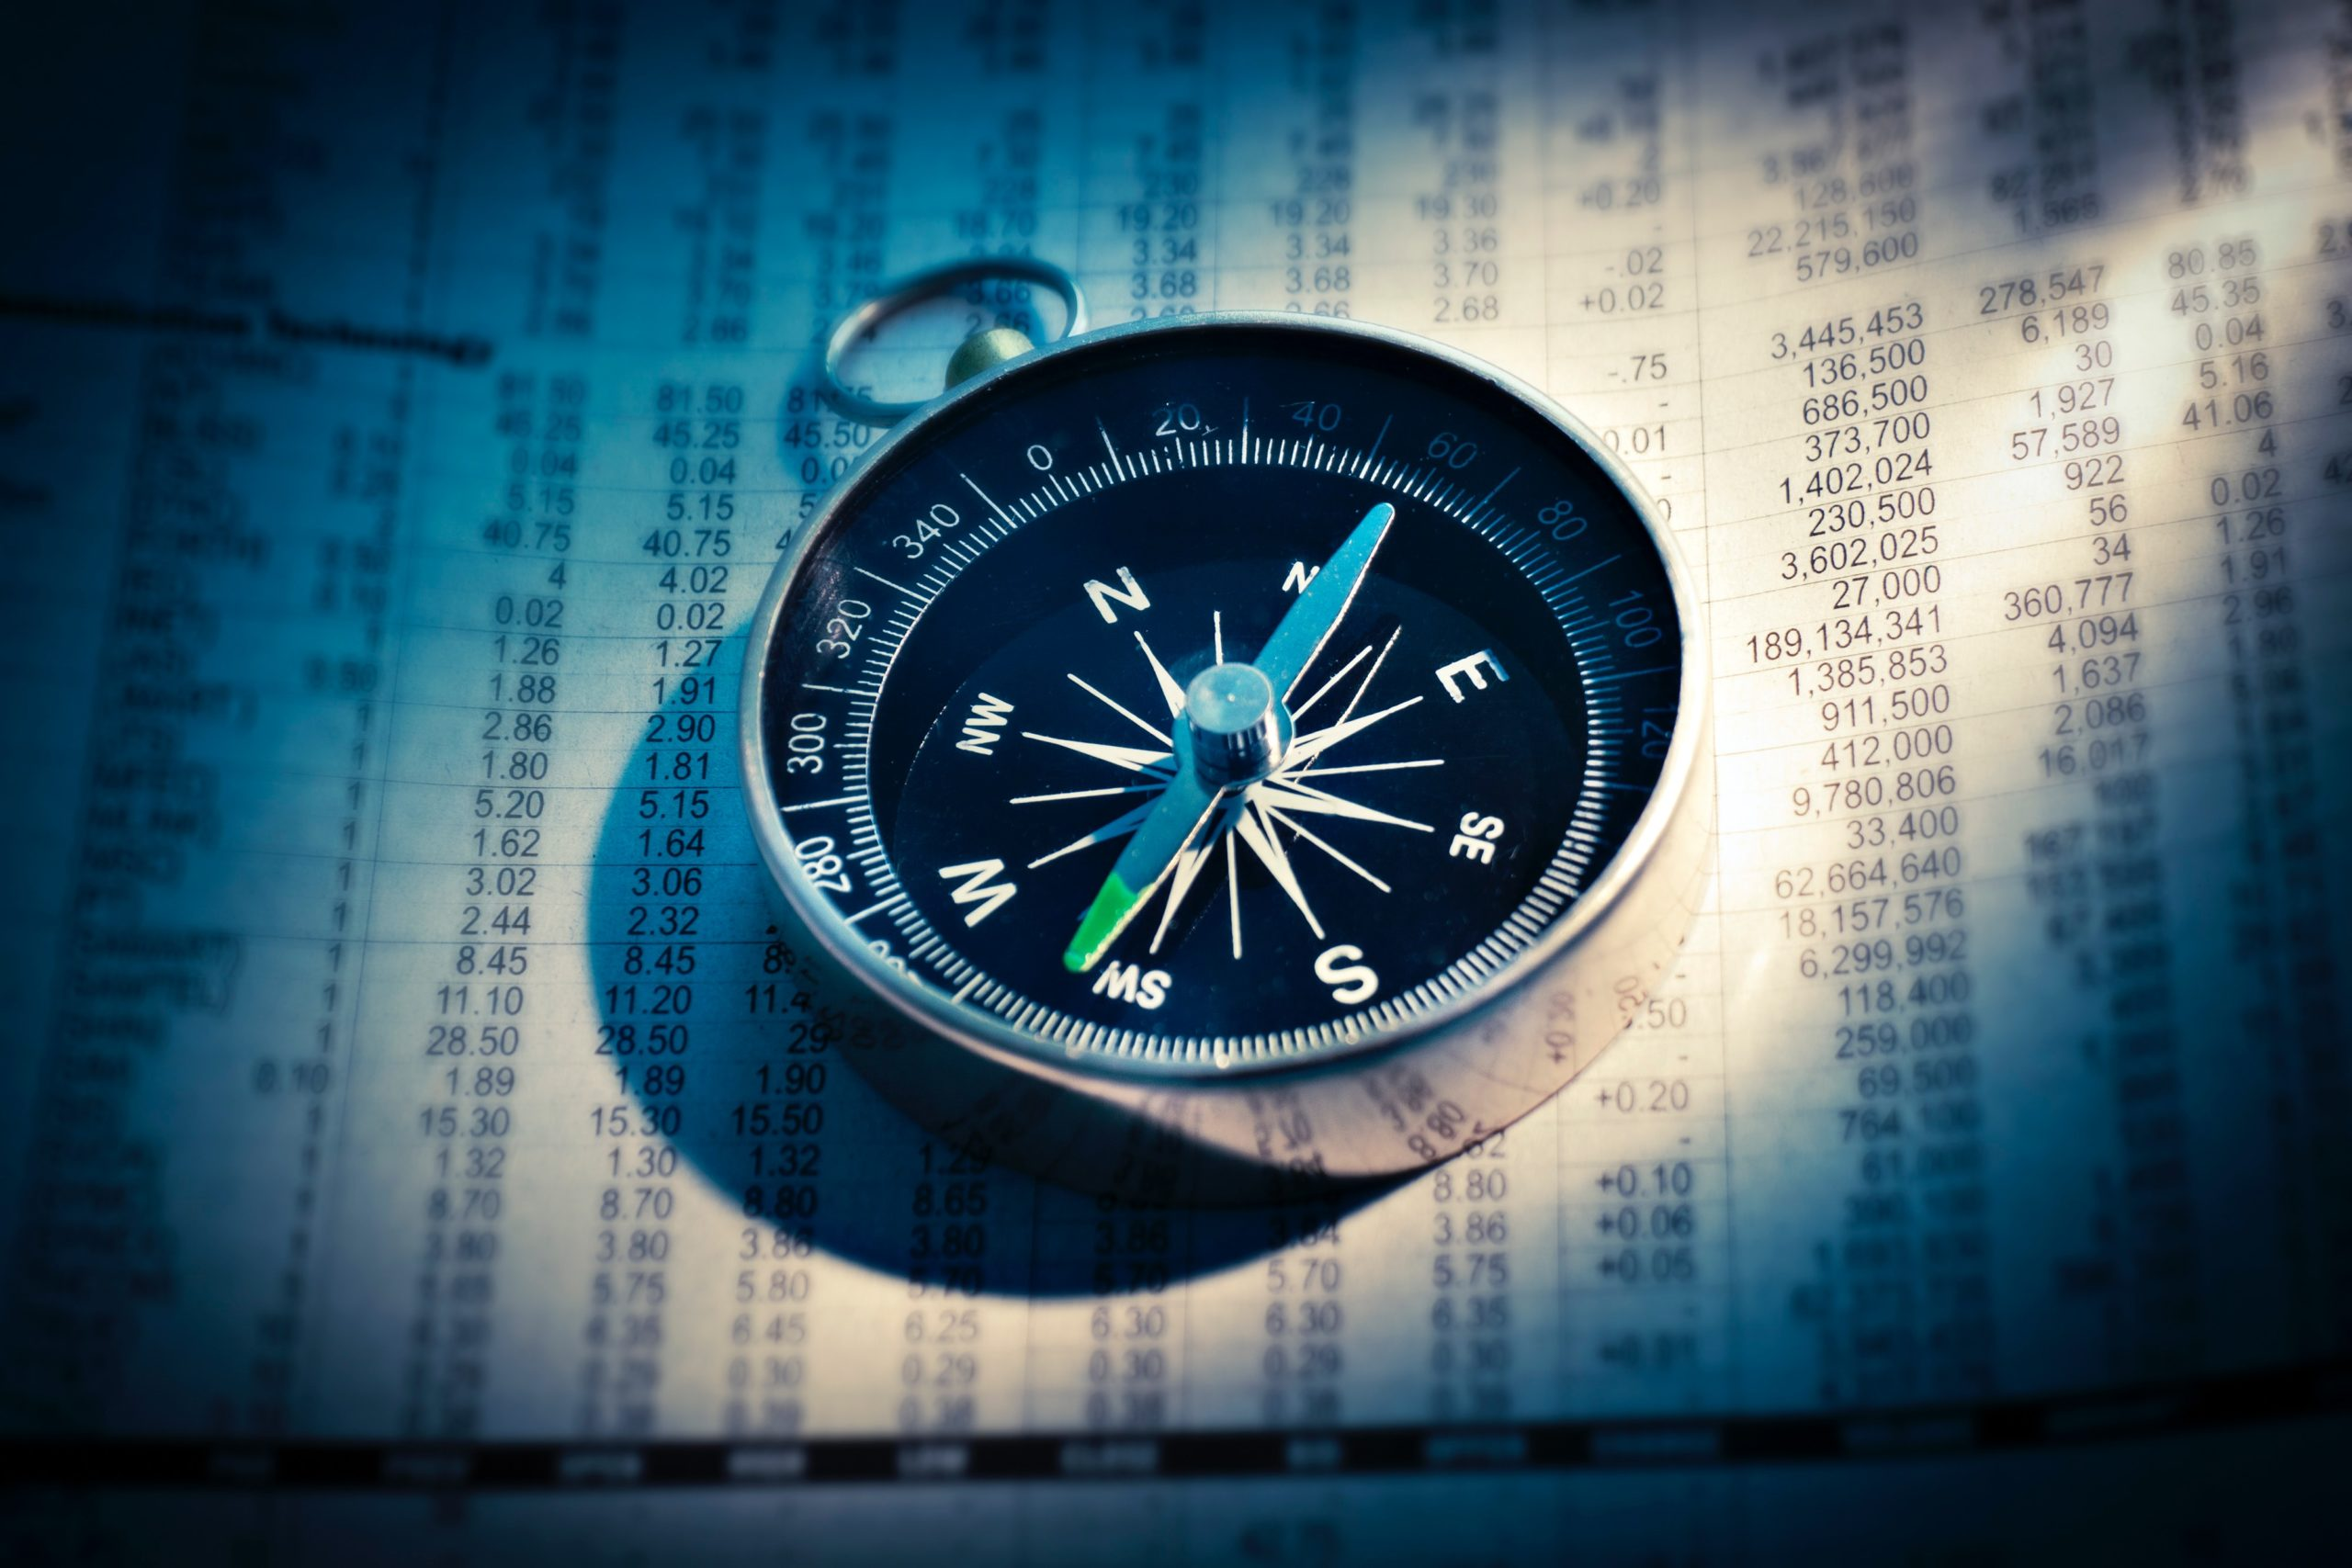 EXTENSION OF EXEMPTION FOR PRIVATE EQUITY FSPs